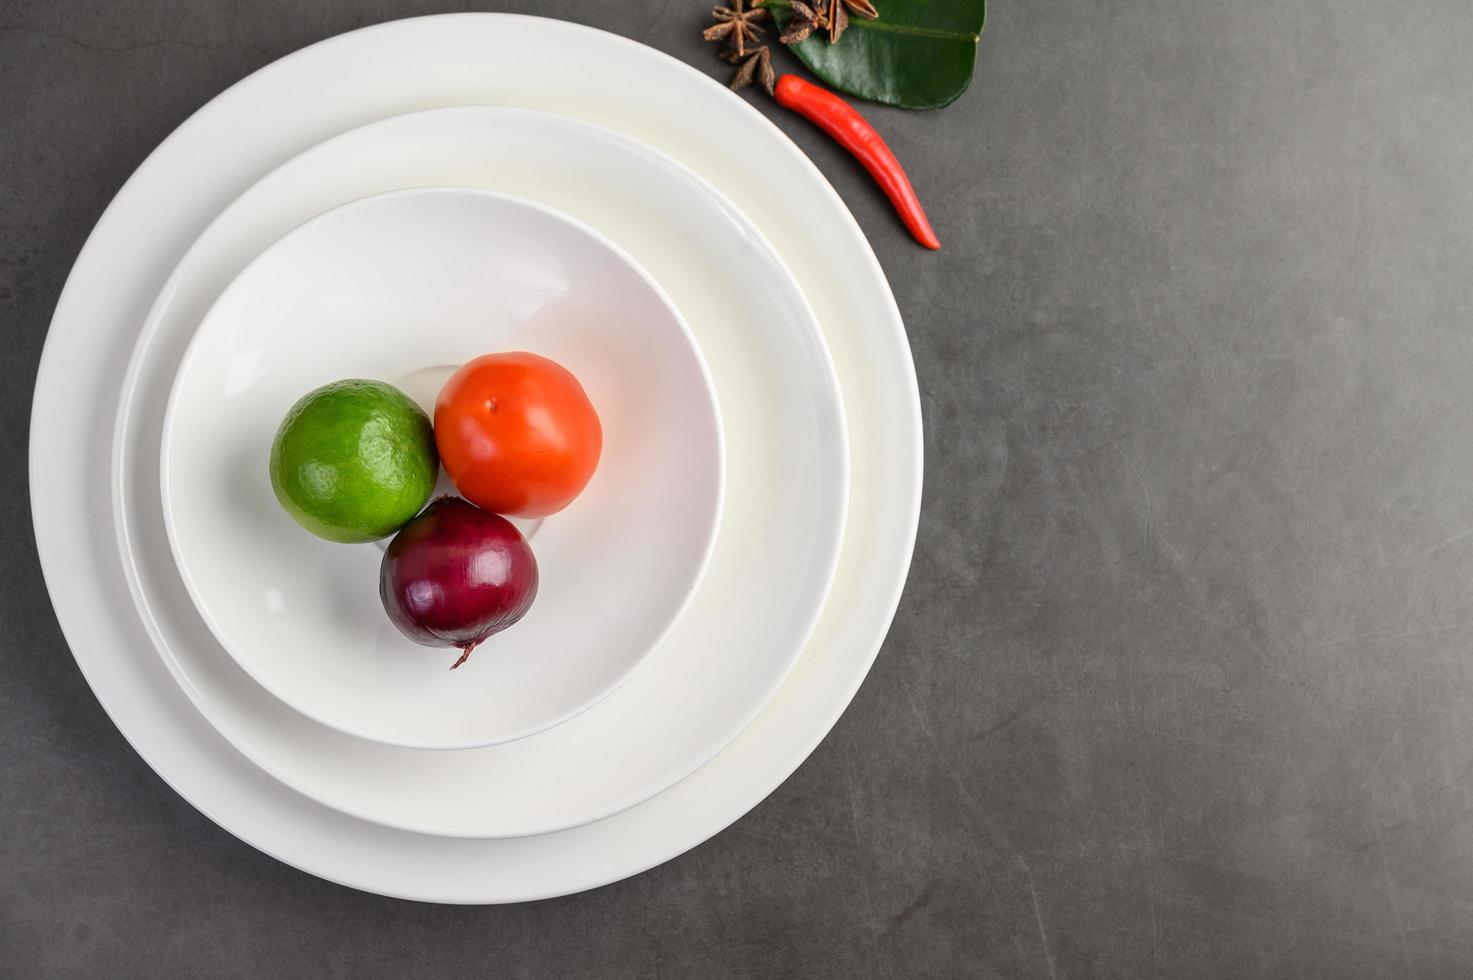 Lime, red onion, and tomatoes on a white plate photo